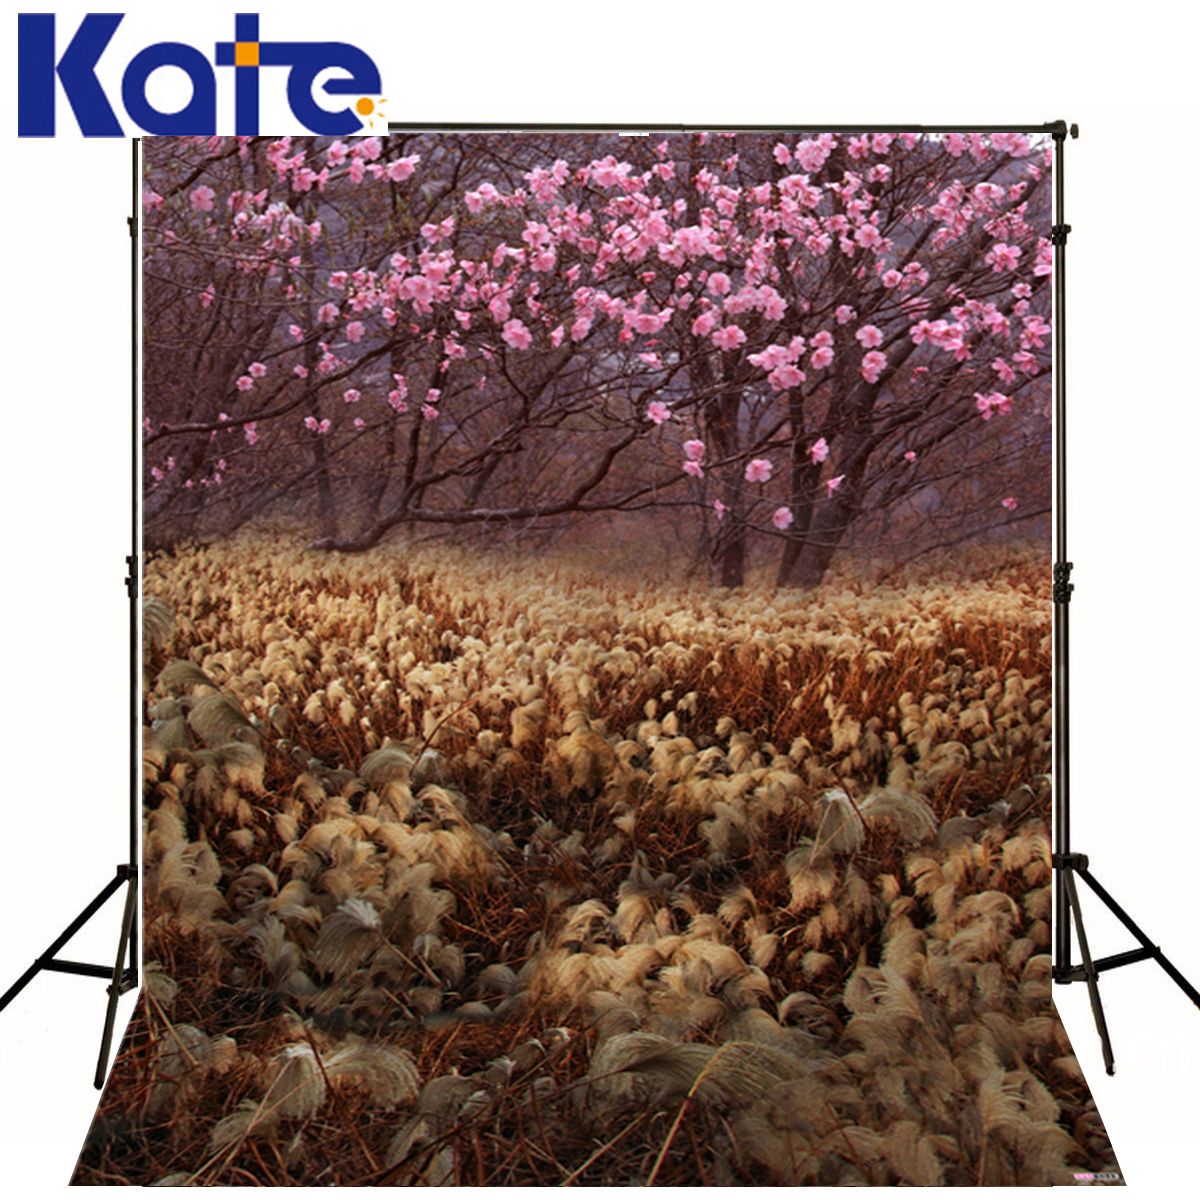 KATE Newborn Backdrop Pink Flowers Trees Baby Photography Backdrops Scenery Background Spring Backdrop for Photo Shoot Studio flame trees of thika